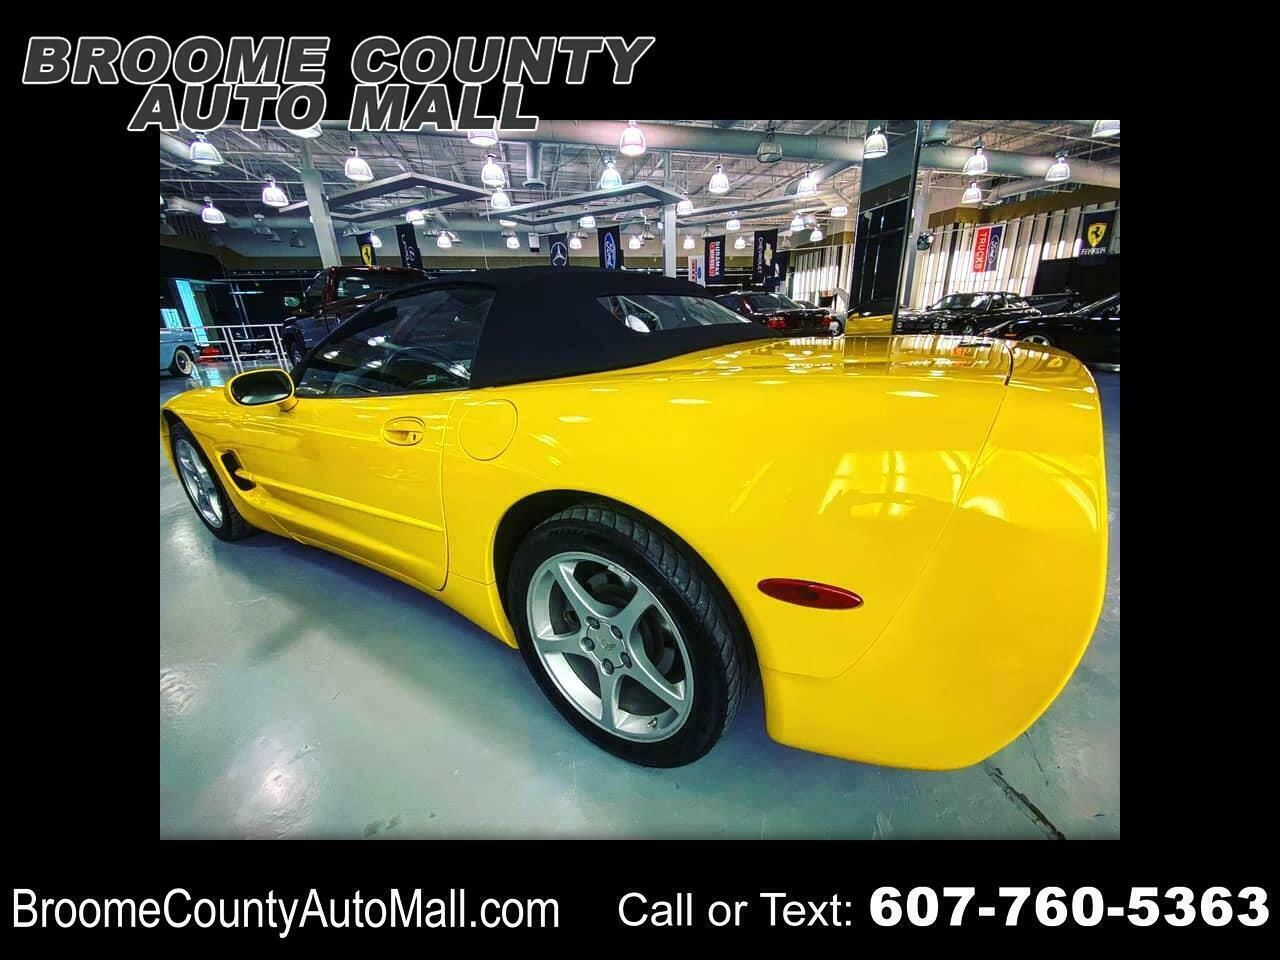 2002 Yellow Chevrolet Corvette Convertible  | C5 Corvette Photo 1